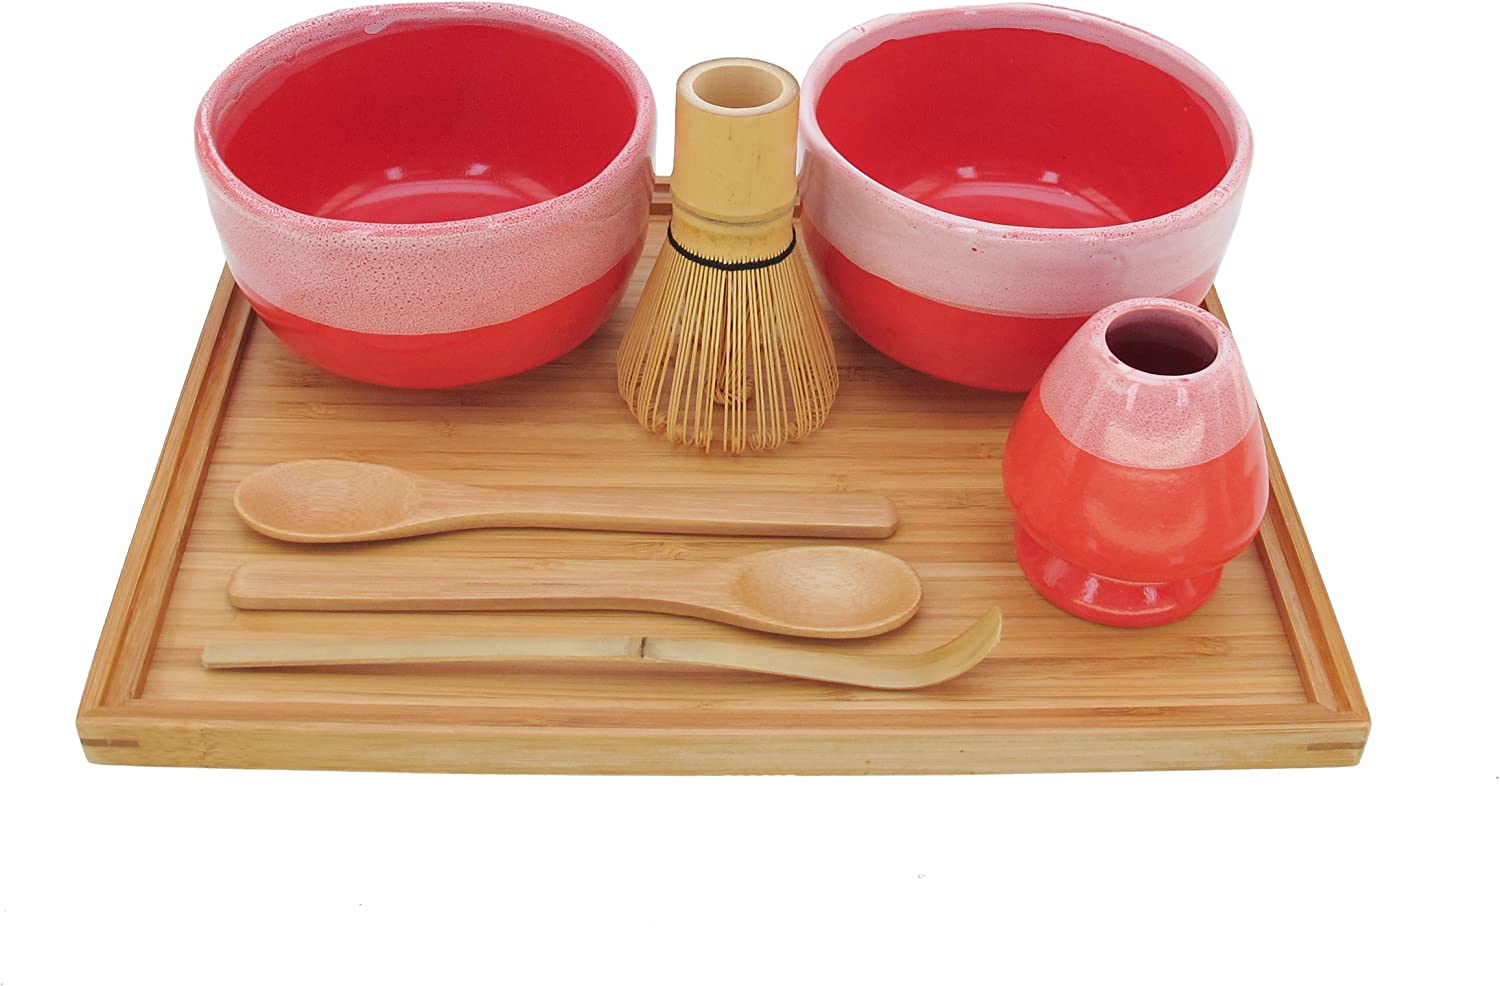 Includes Bowl /& Rest Matcha Bowl Set BambooMN Brand 1 Set Coral